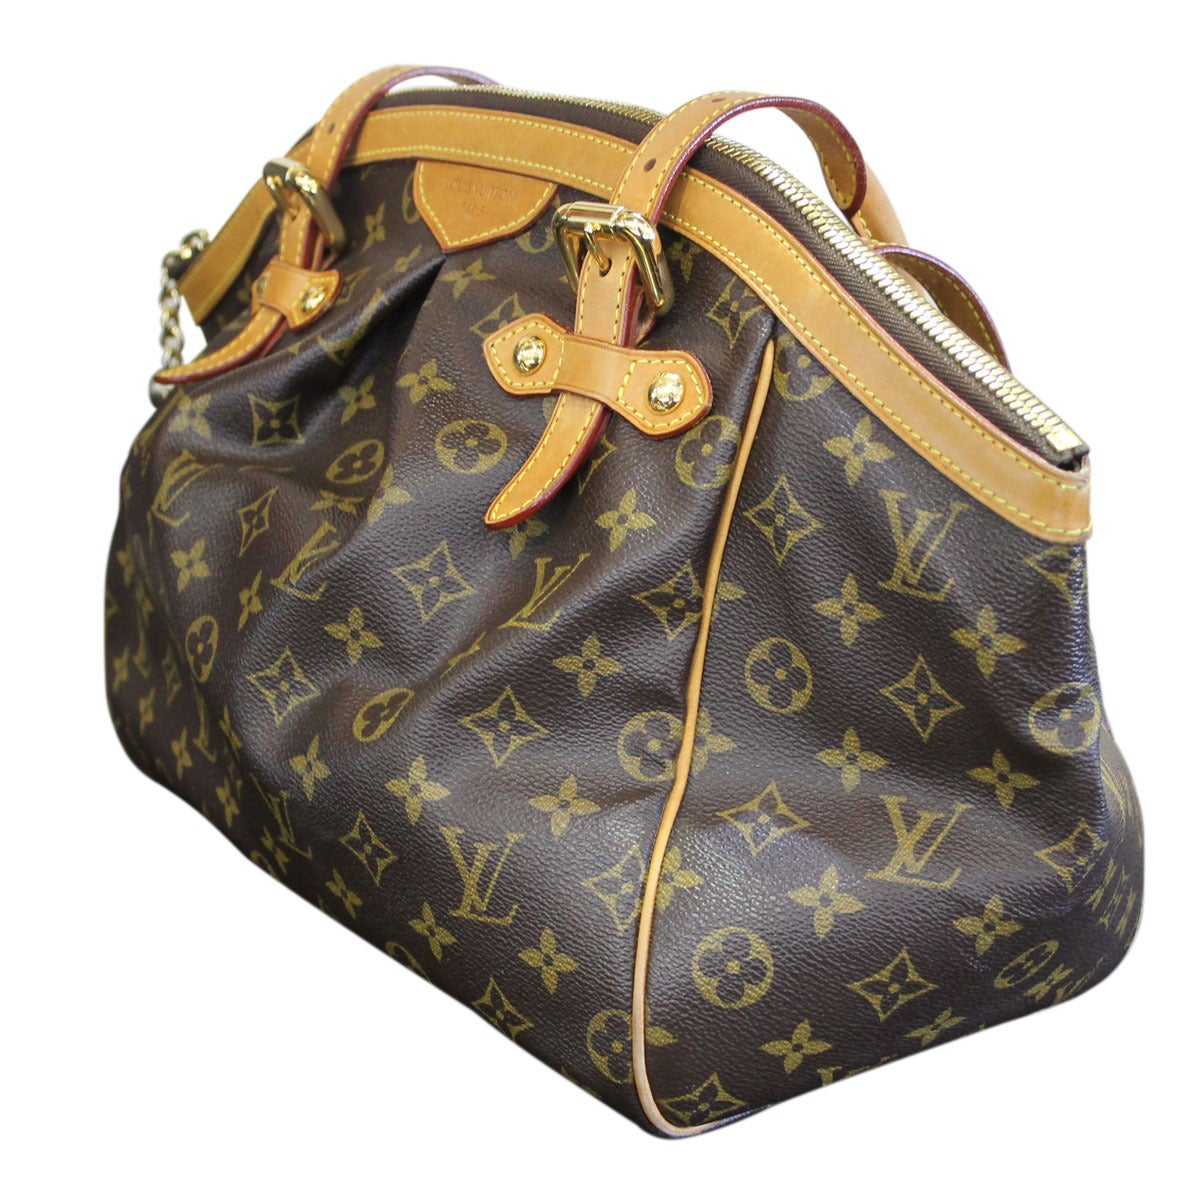 Tivoli Gm Louis Vuitton Tivoli Gm Monogram Canvas Shoulder Bag In Box